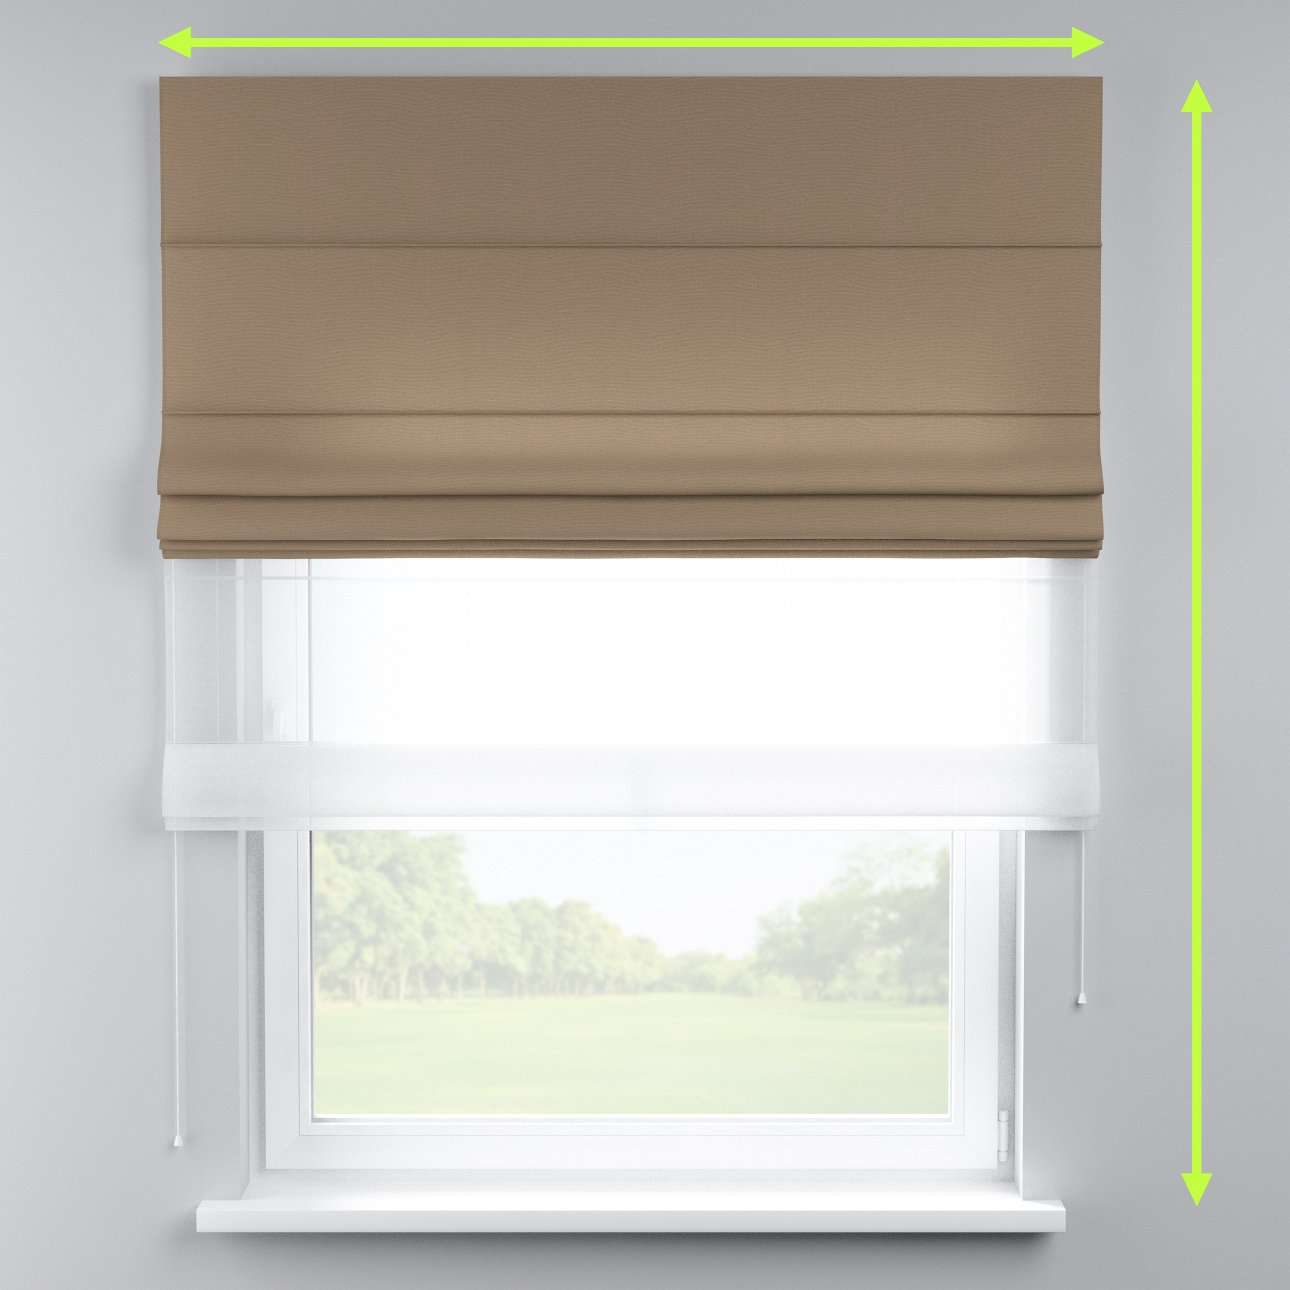 Voile and fabric roman blind (DUO II) in collection Quadro, fabric: 136-09